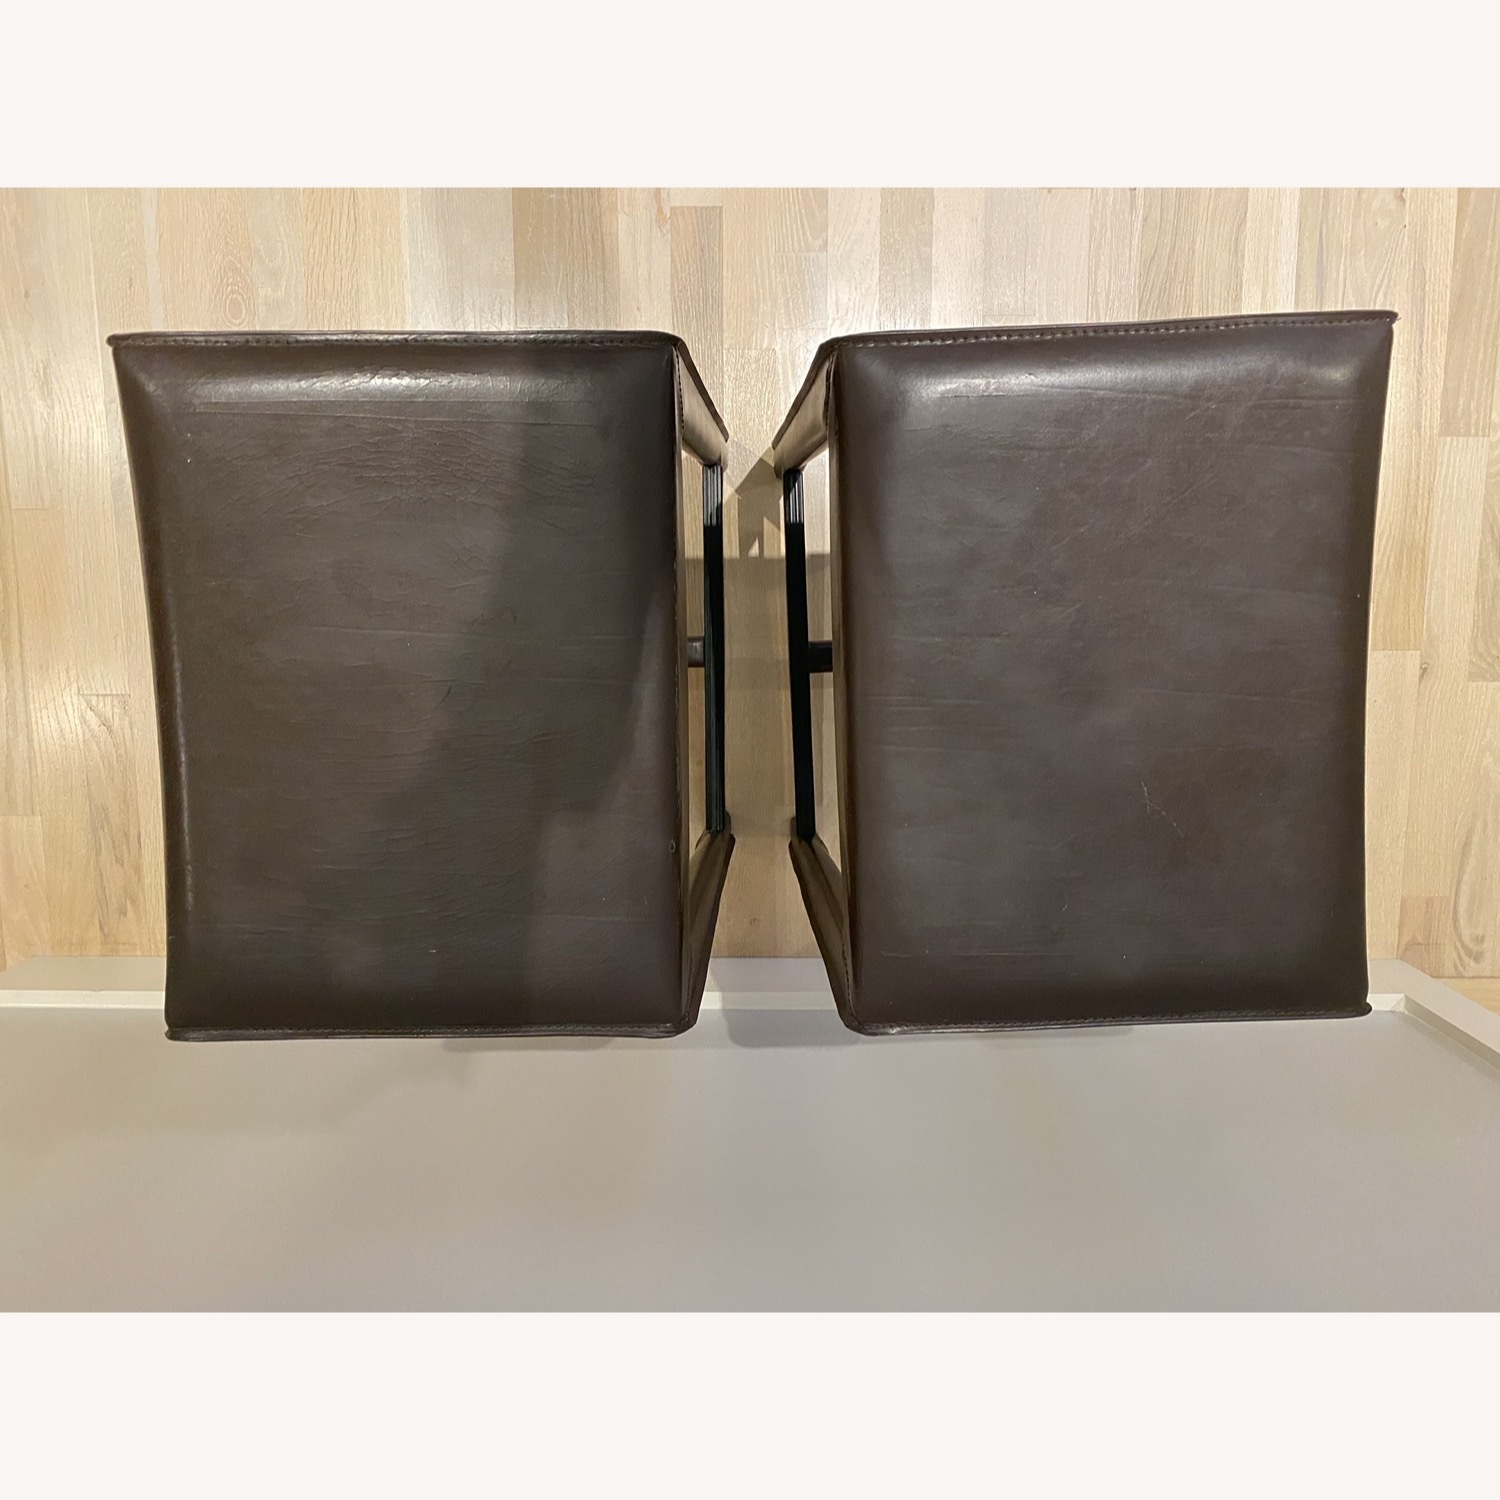 Set of Crate & Barrel Backless Counter Stools - image-3